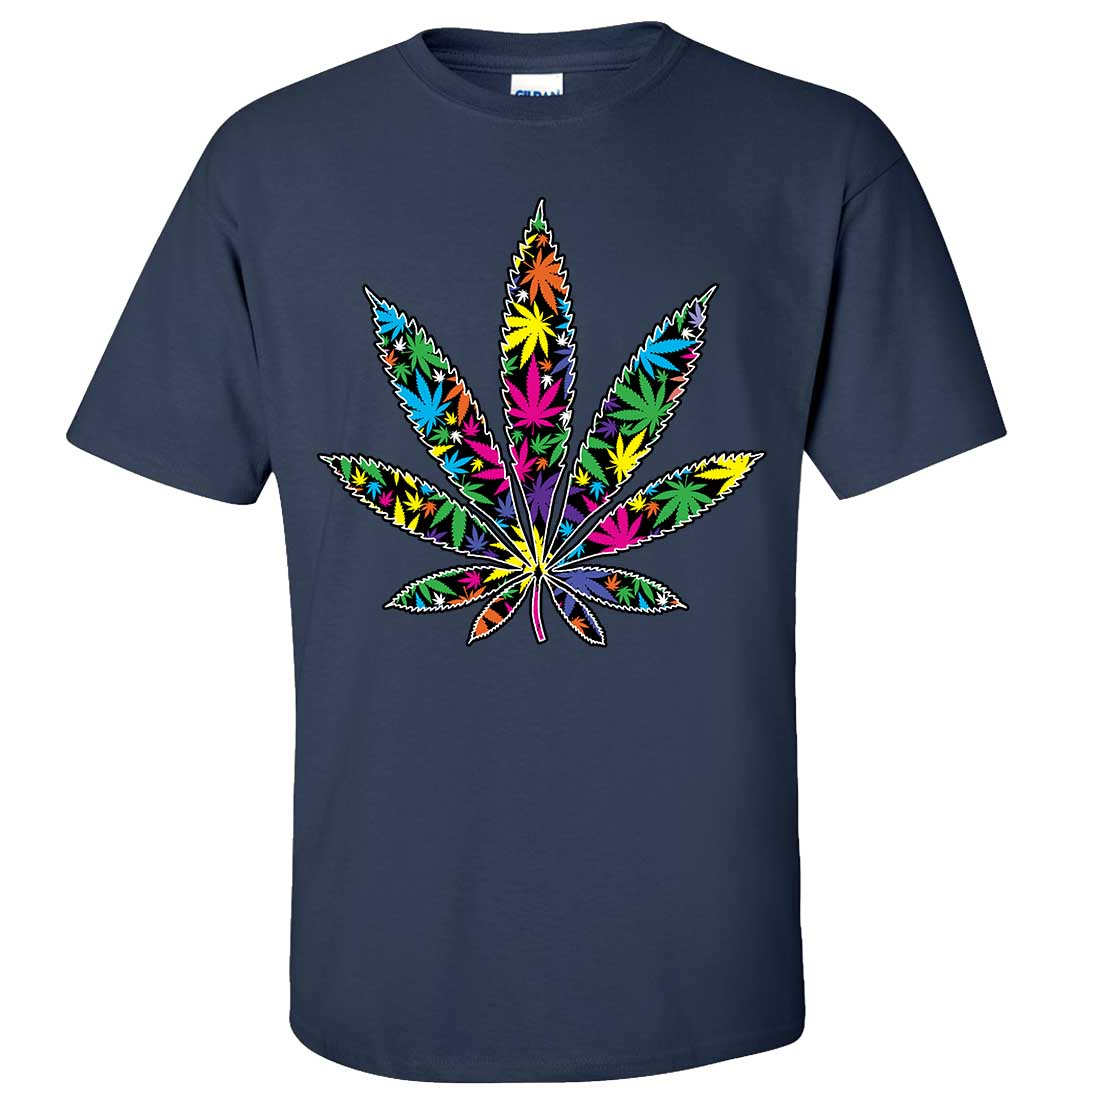 Neon party pot leaf asst colors t shirt tee ebay for Neon colored t shirts wholesale